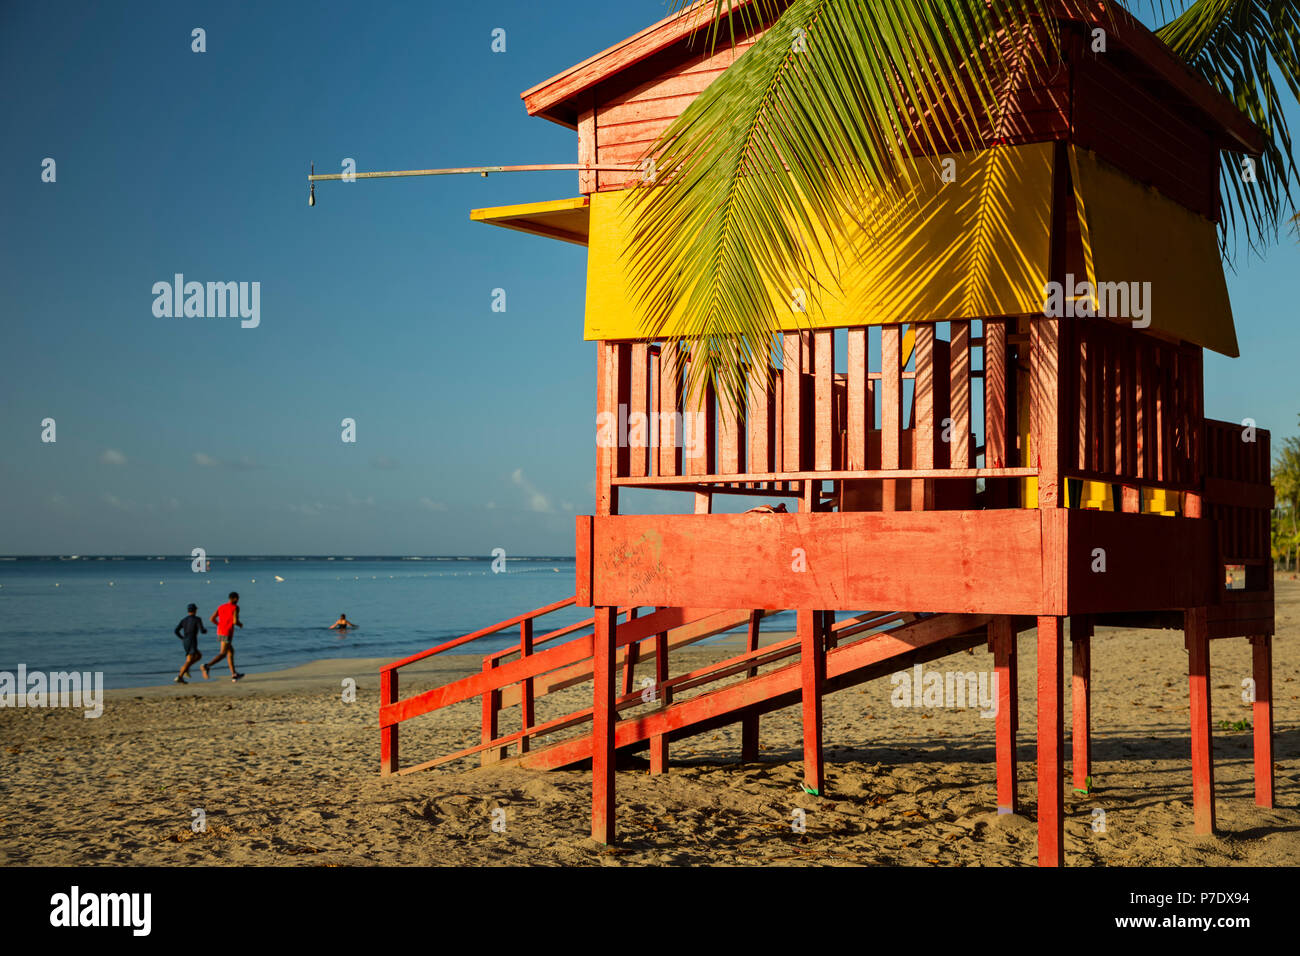 Luquillo Stock Photos & Luquillo Stock Images - Alamy